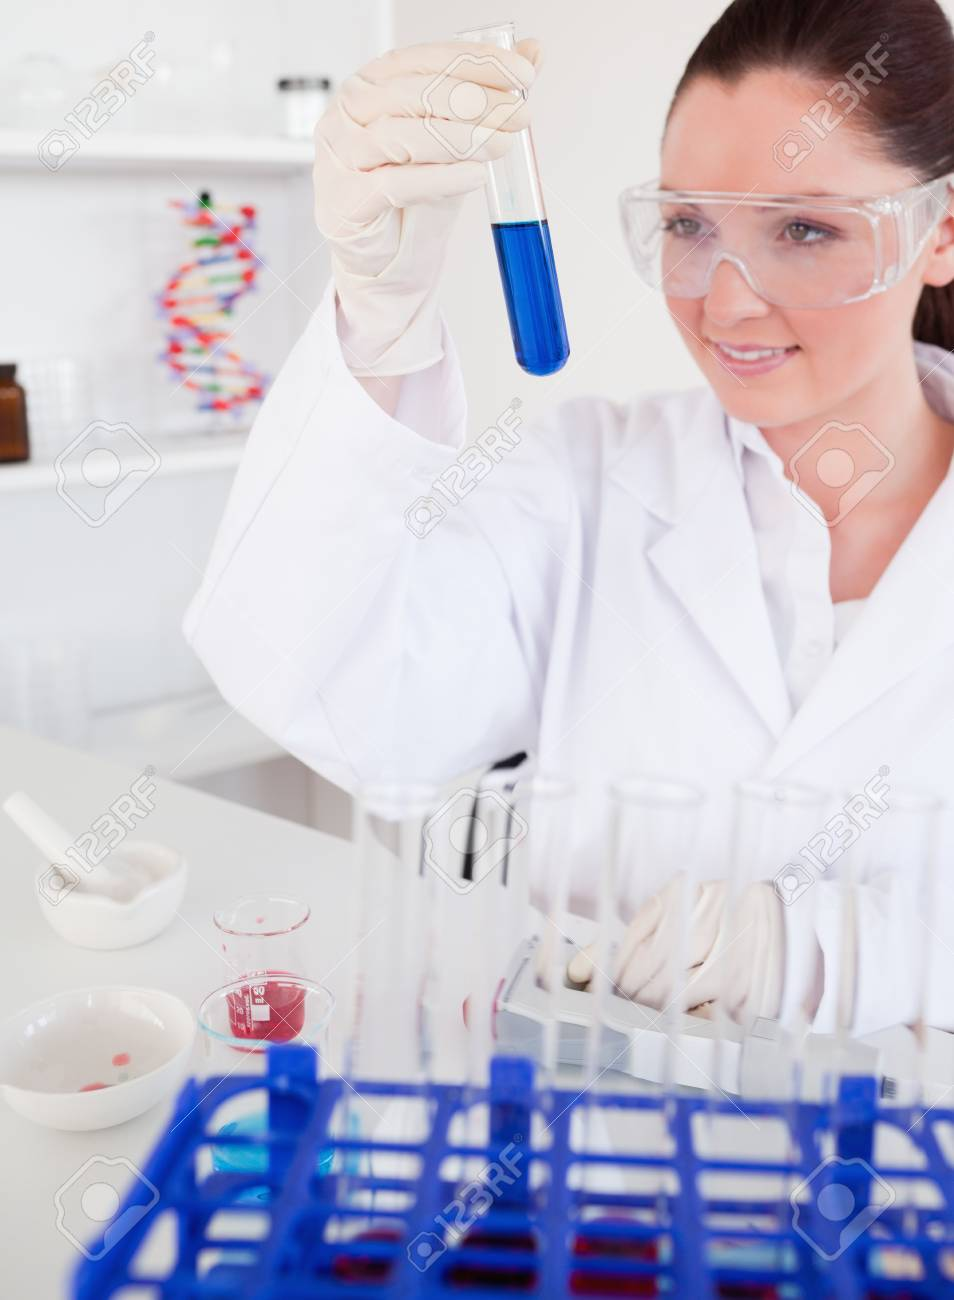 Attractive red-haired woman holding a test tube in a lab Stock Photo - 10070775